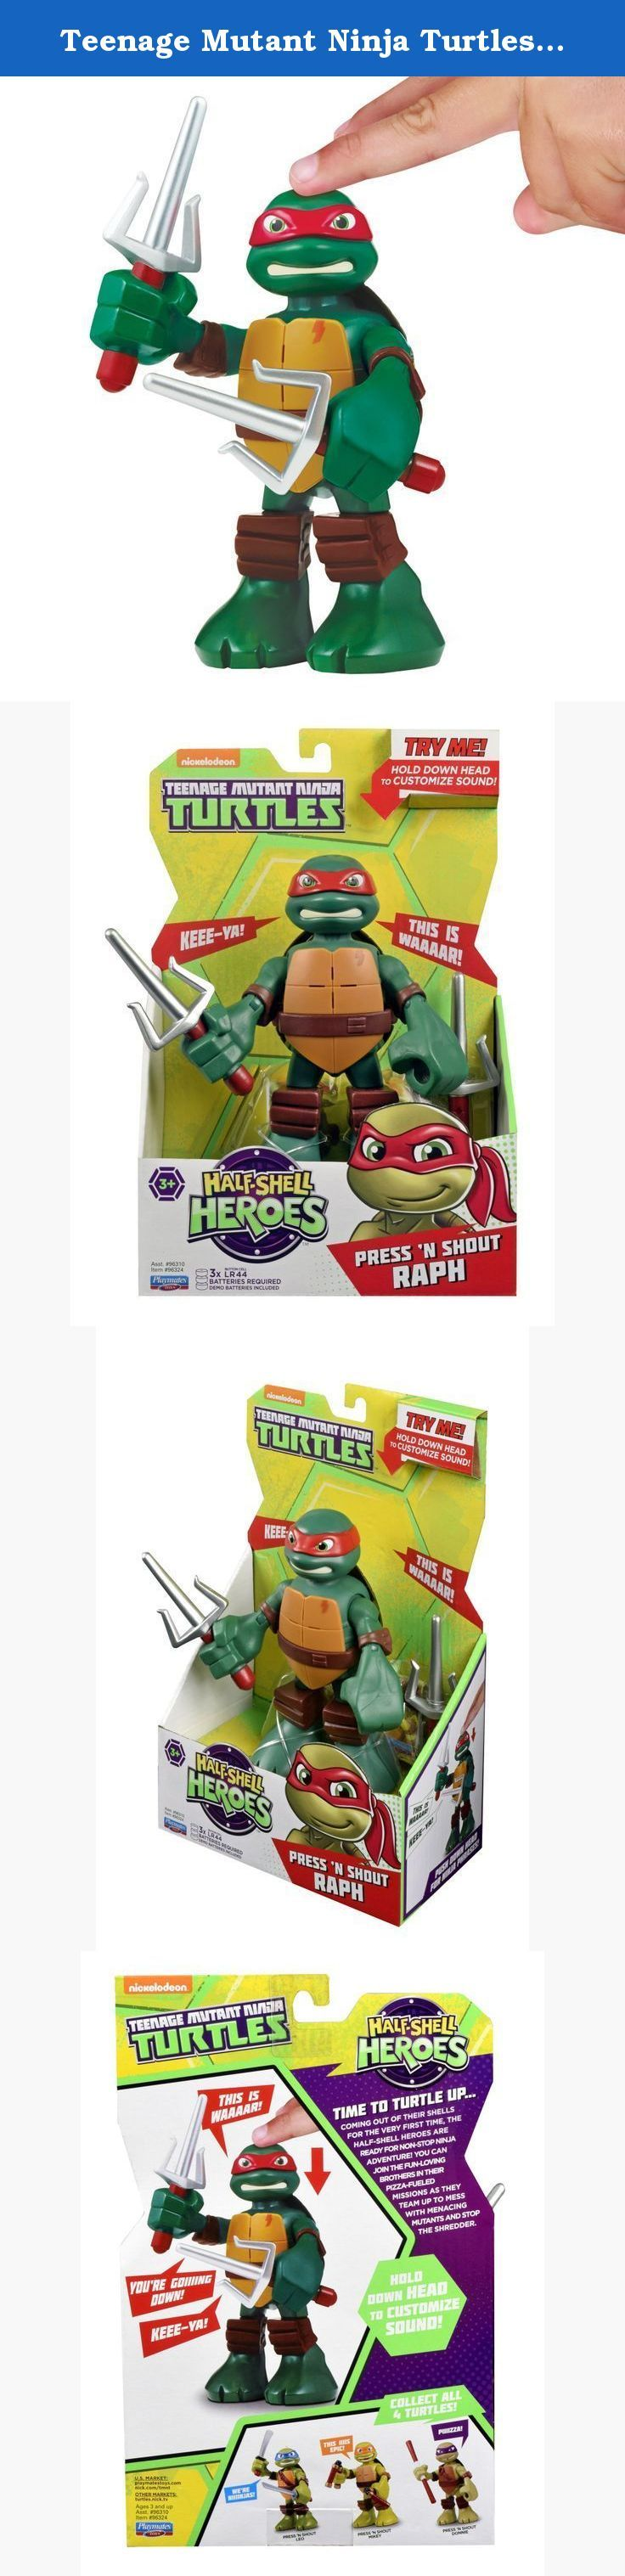 """Teenage Mutant Ninja Turtles Pre-Cool Half Shell Heroes 6"""" Raphael Powersound Talking Turtles Figure. Coming out of their shells for the very first time, the Half-Shell Heroes are ready for non-stop ninja adventure! You can join the fun-loving brothers in their pizza-fueled missions as they team up to mess with menacing mutants and stop the Shredder."""